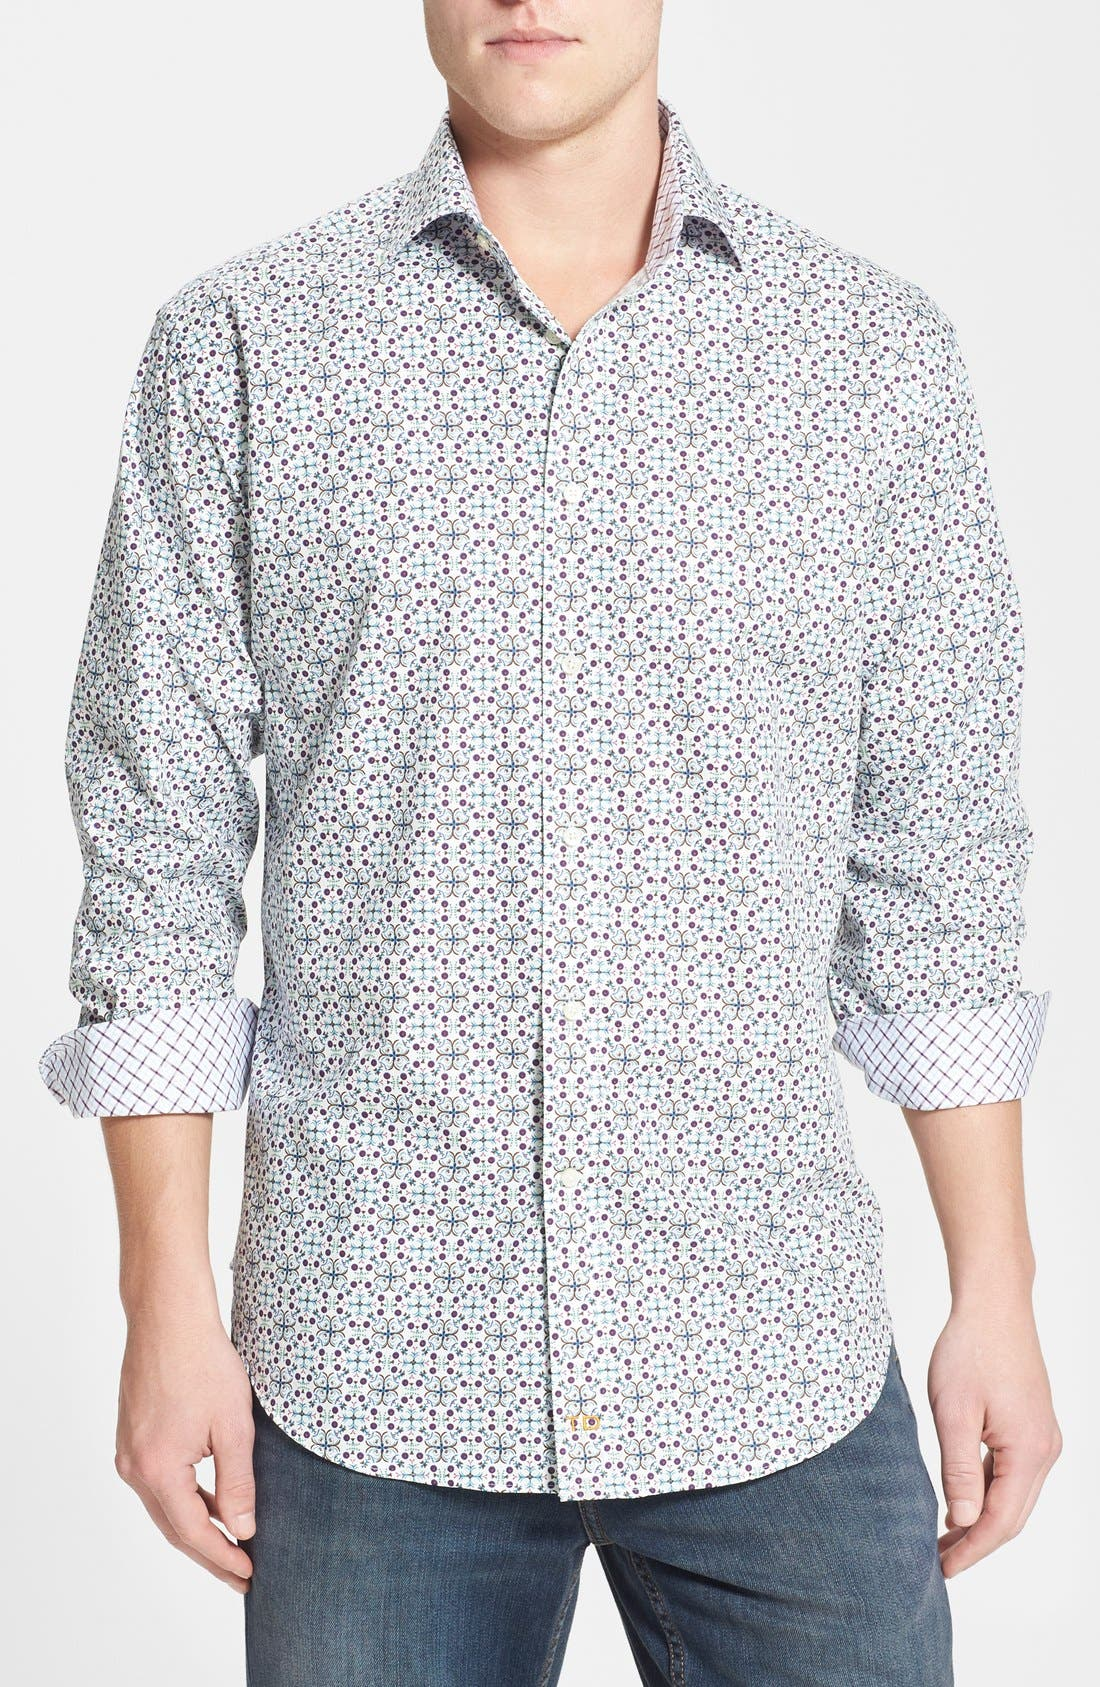 Main Image - Thomas Dean Regular Fit Print Sport Shirt